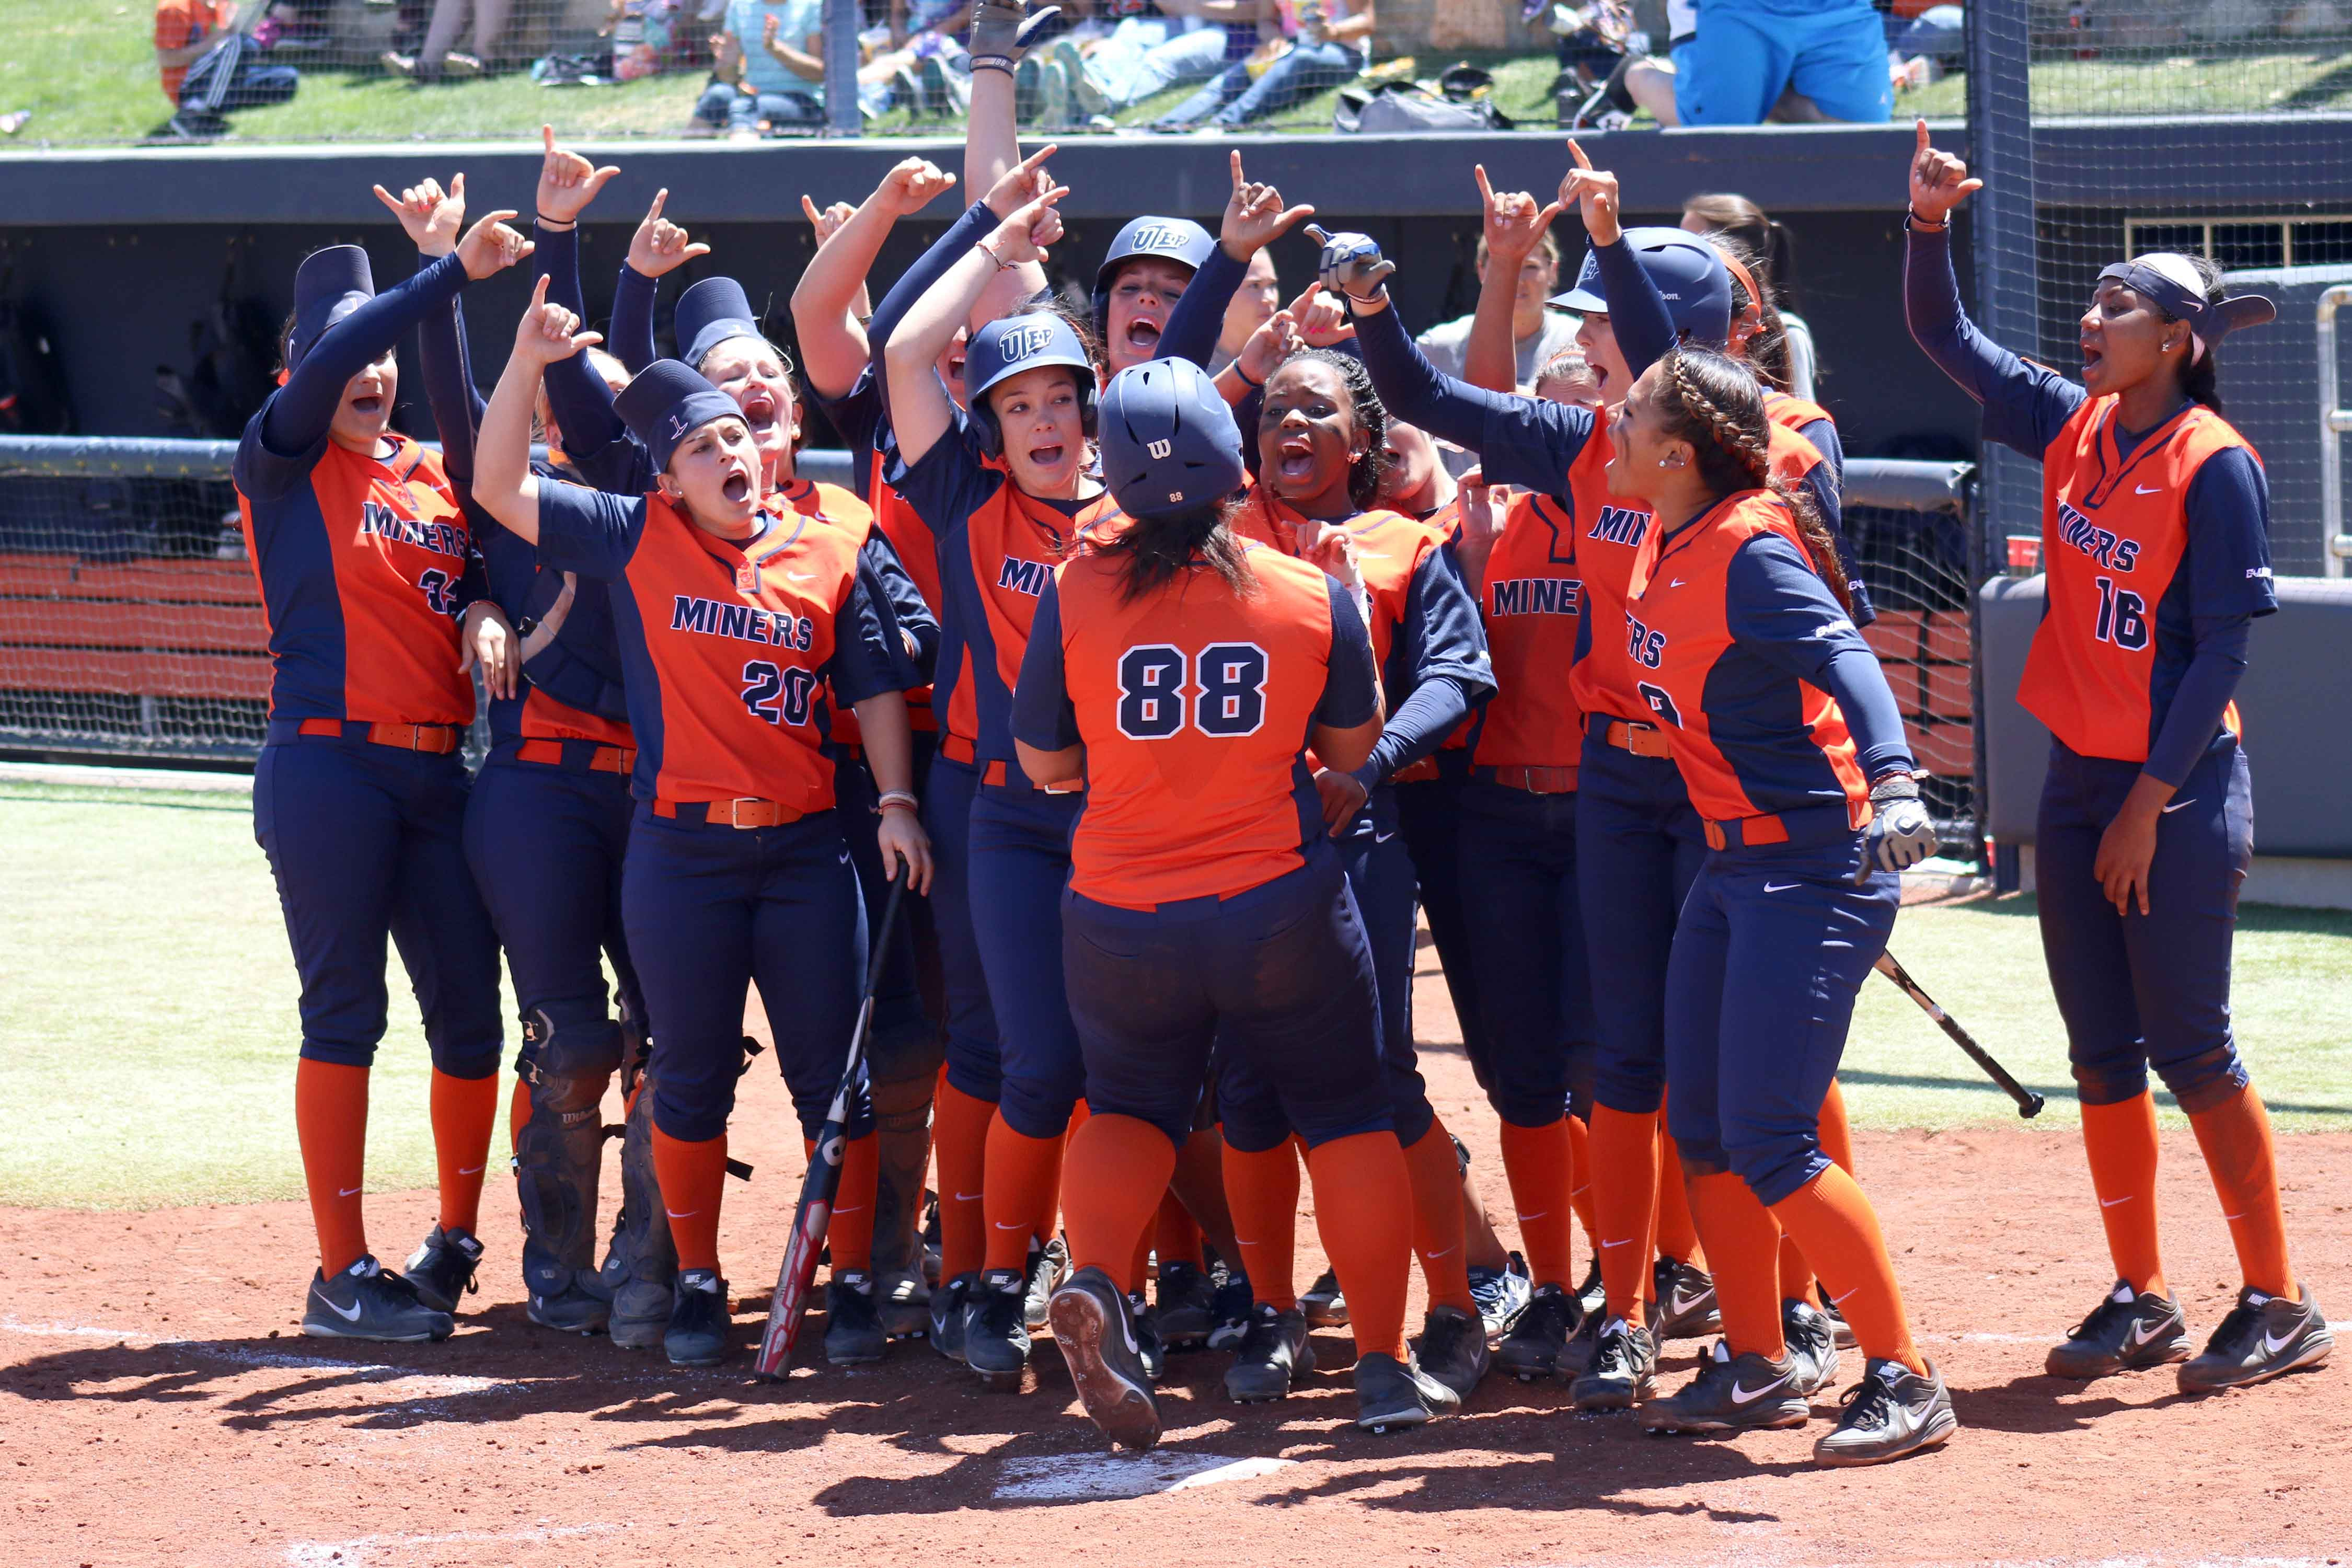 The UTEP softball team is winless after starting the season with five straight losses.